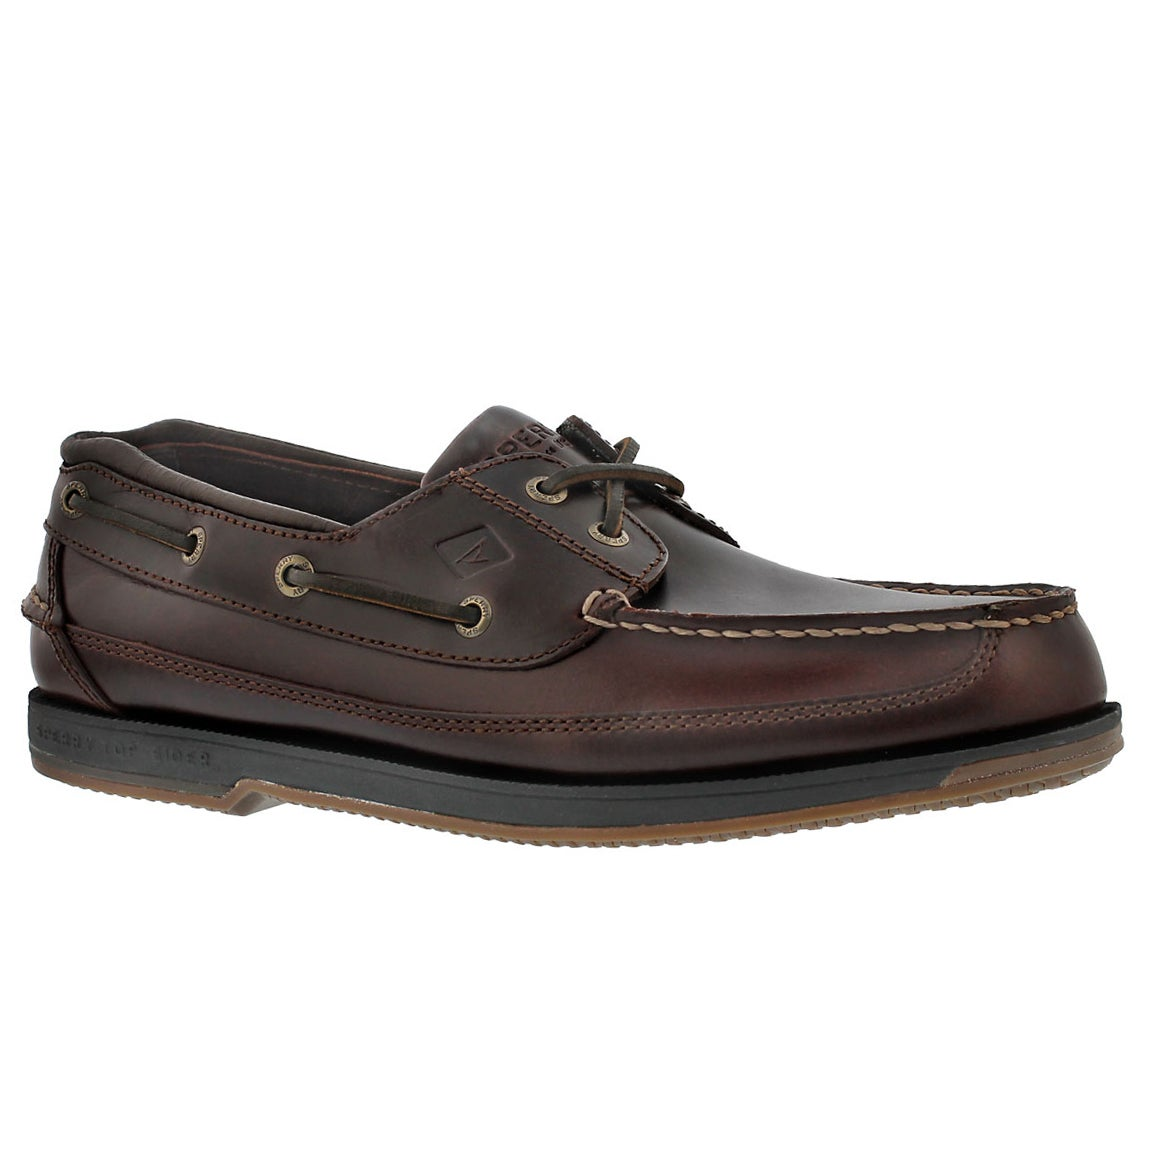 Men's CHARTER 2-Eye amaretto boat shoes